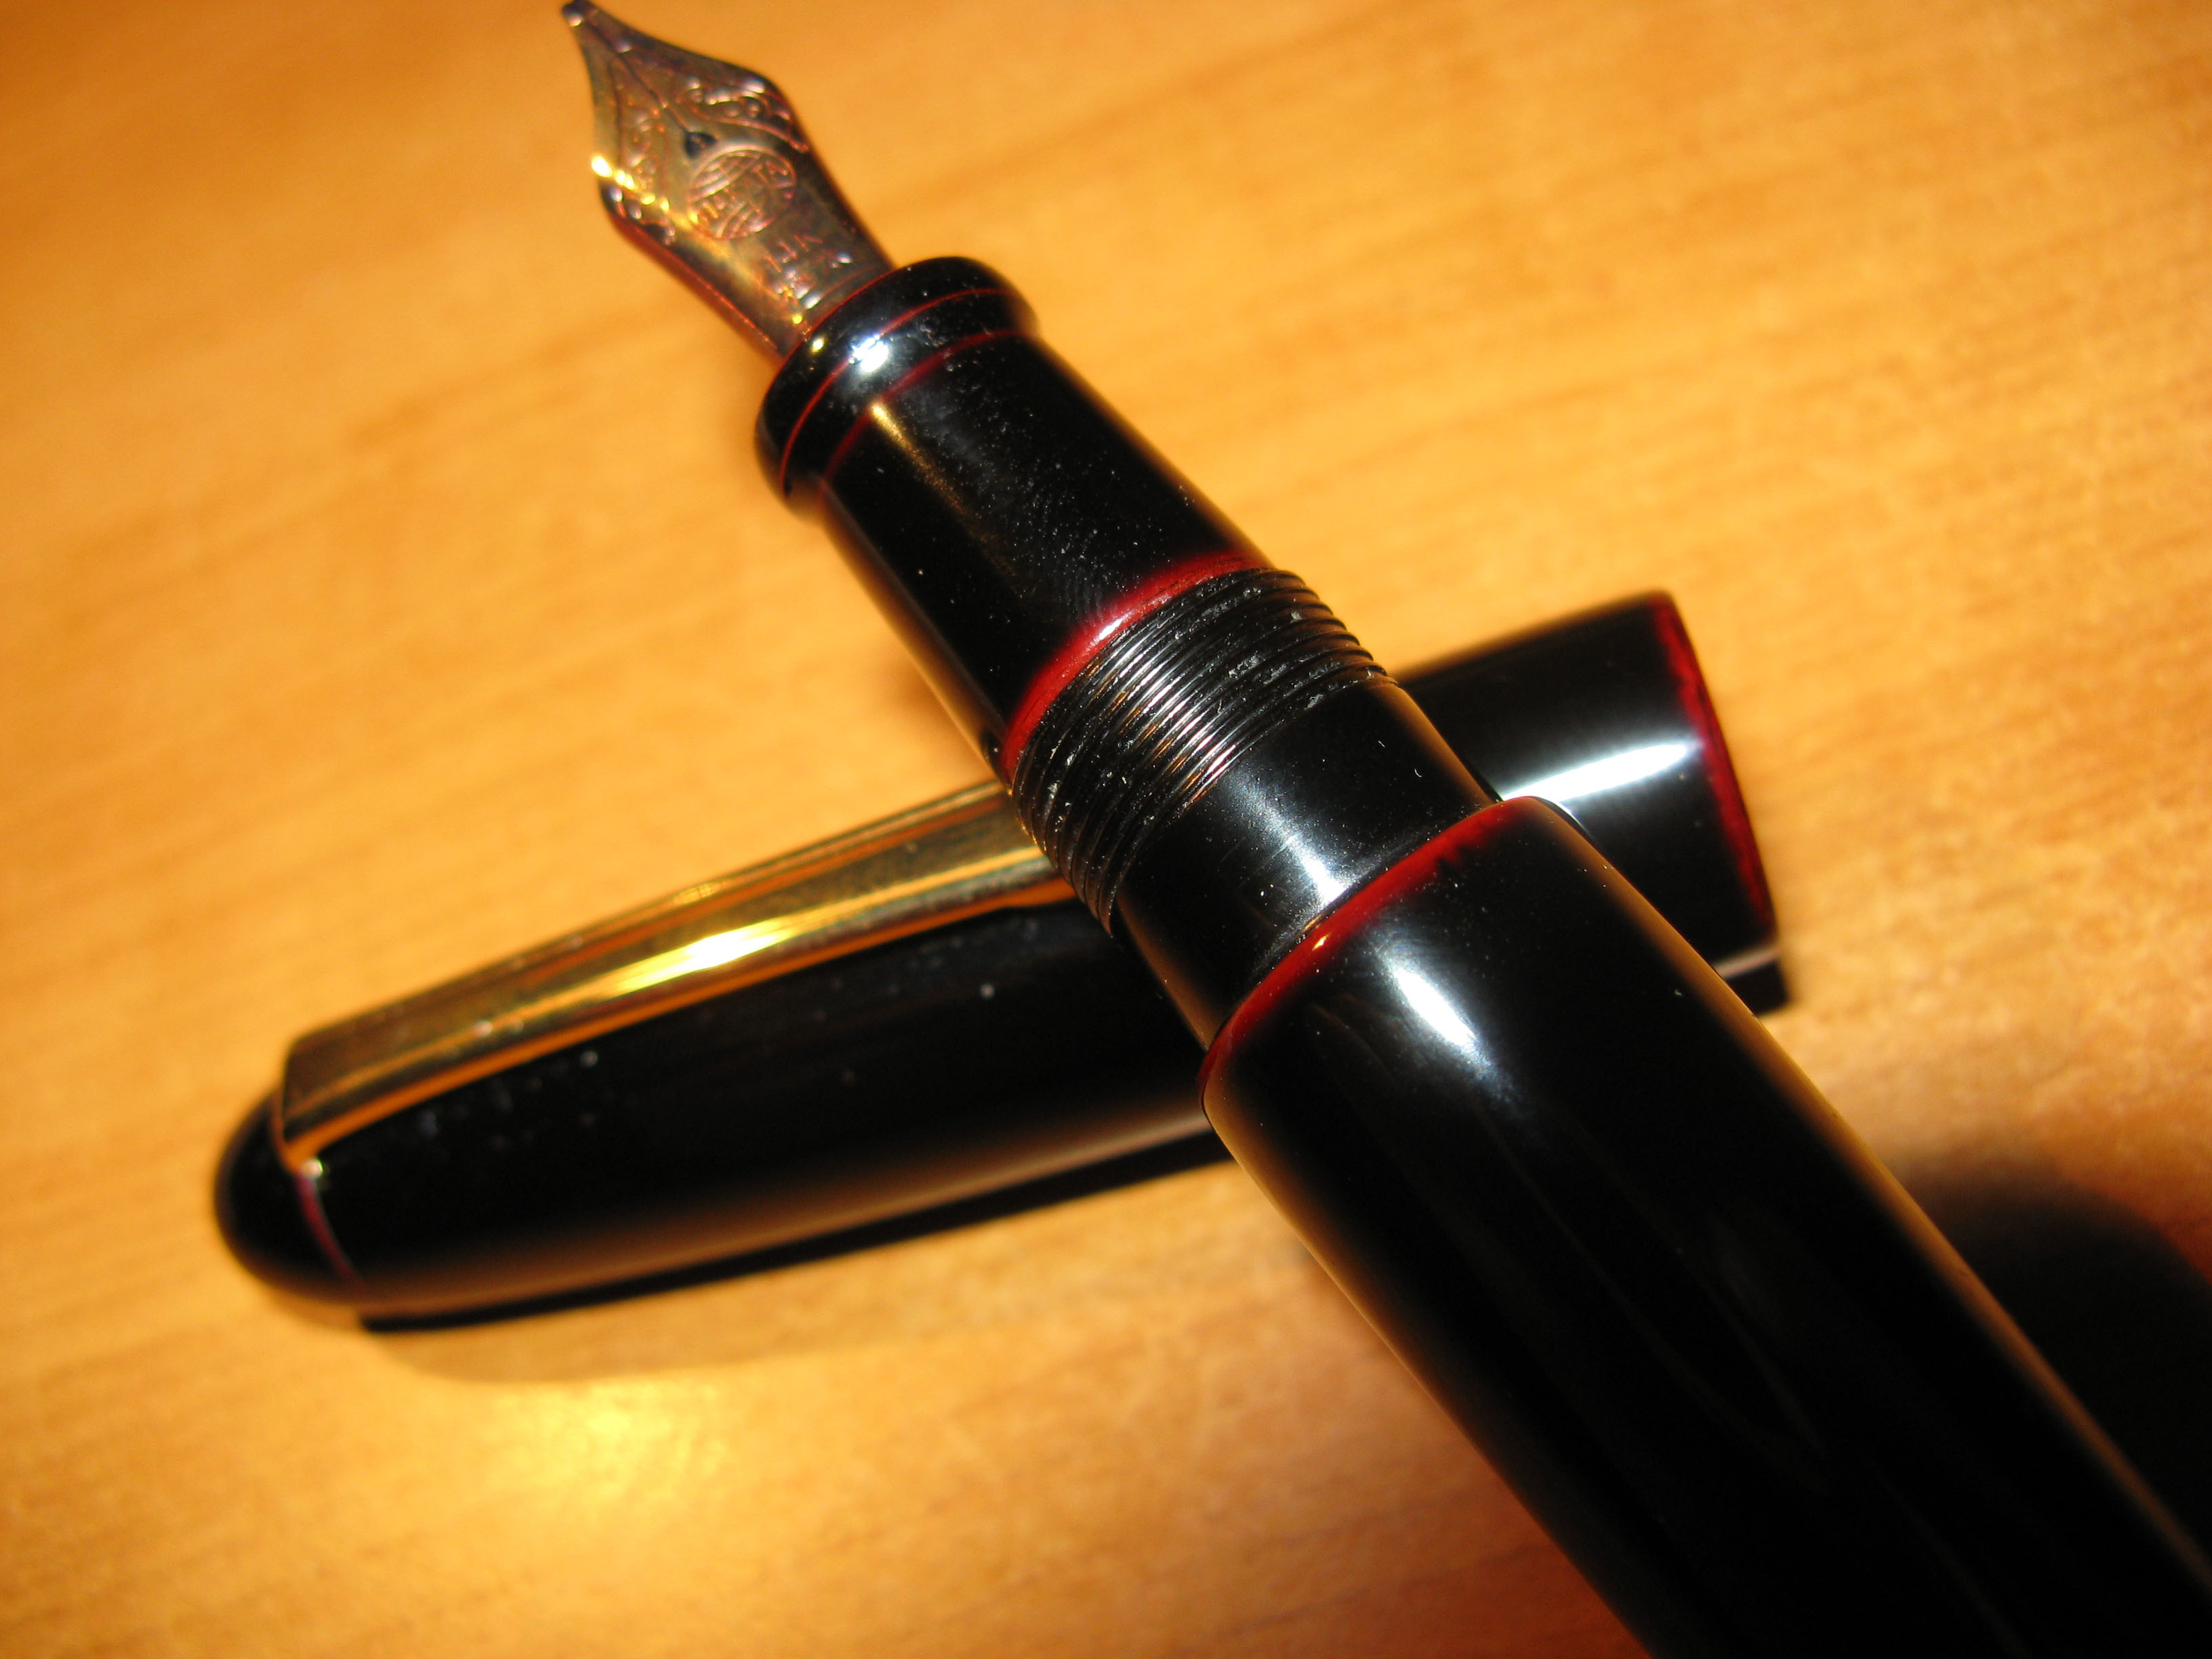 Nakaya Kuro Tamenuri Portable Writer Fountain Pen